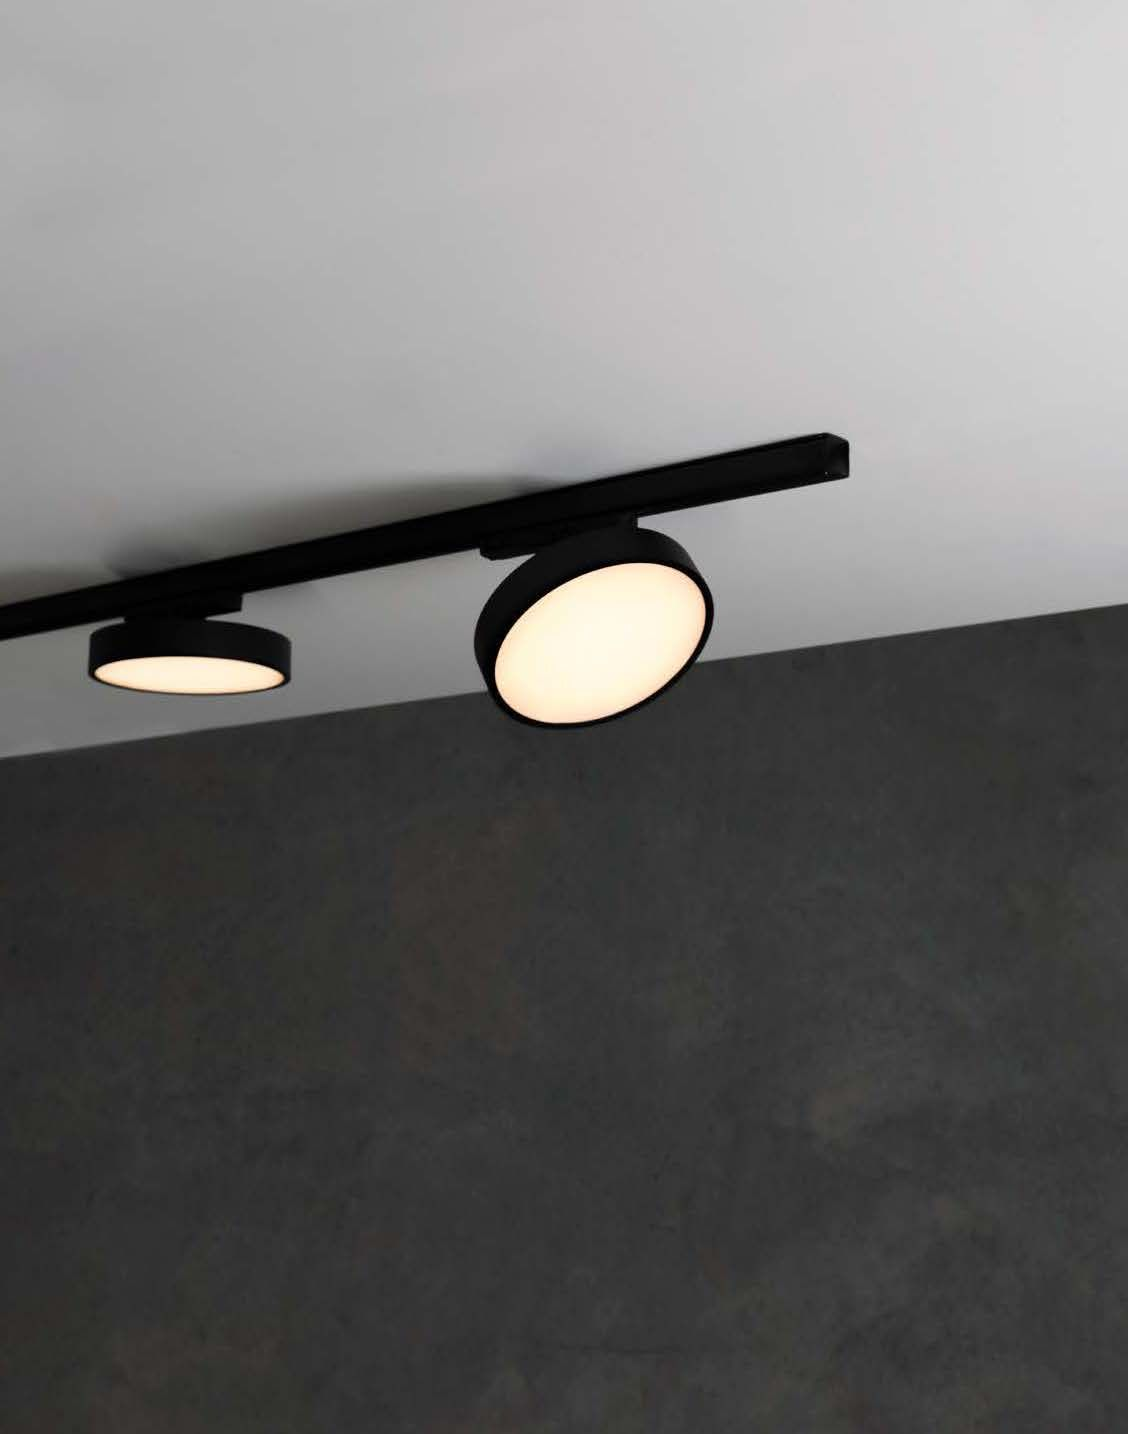 online store 6cfdf b8627 As an extension of the Akira Ceiling Light, the Akira Track ...